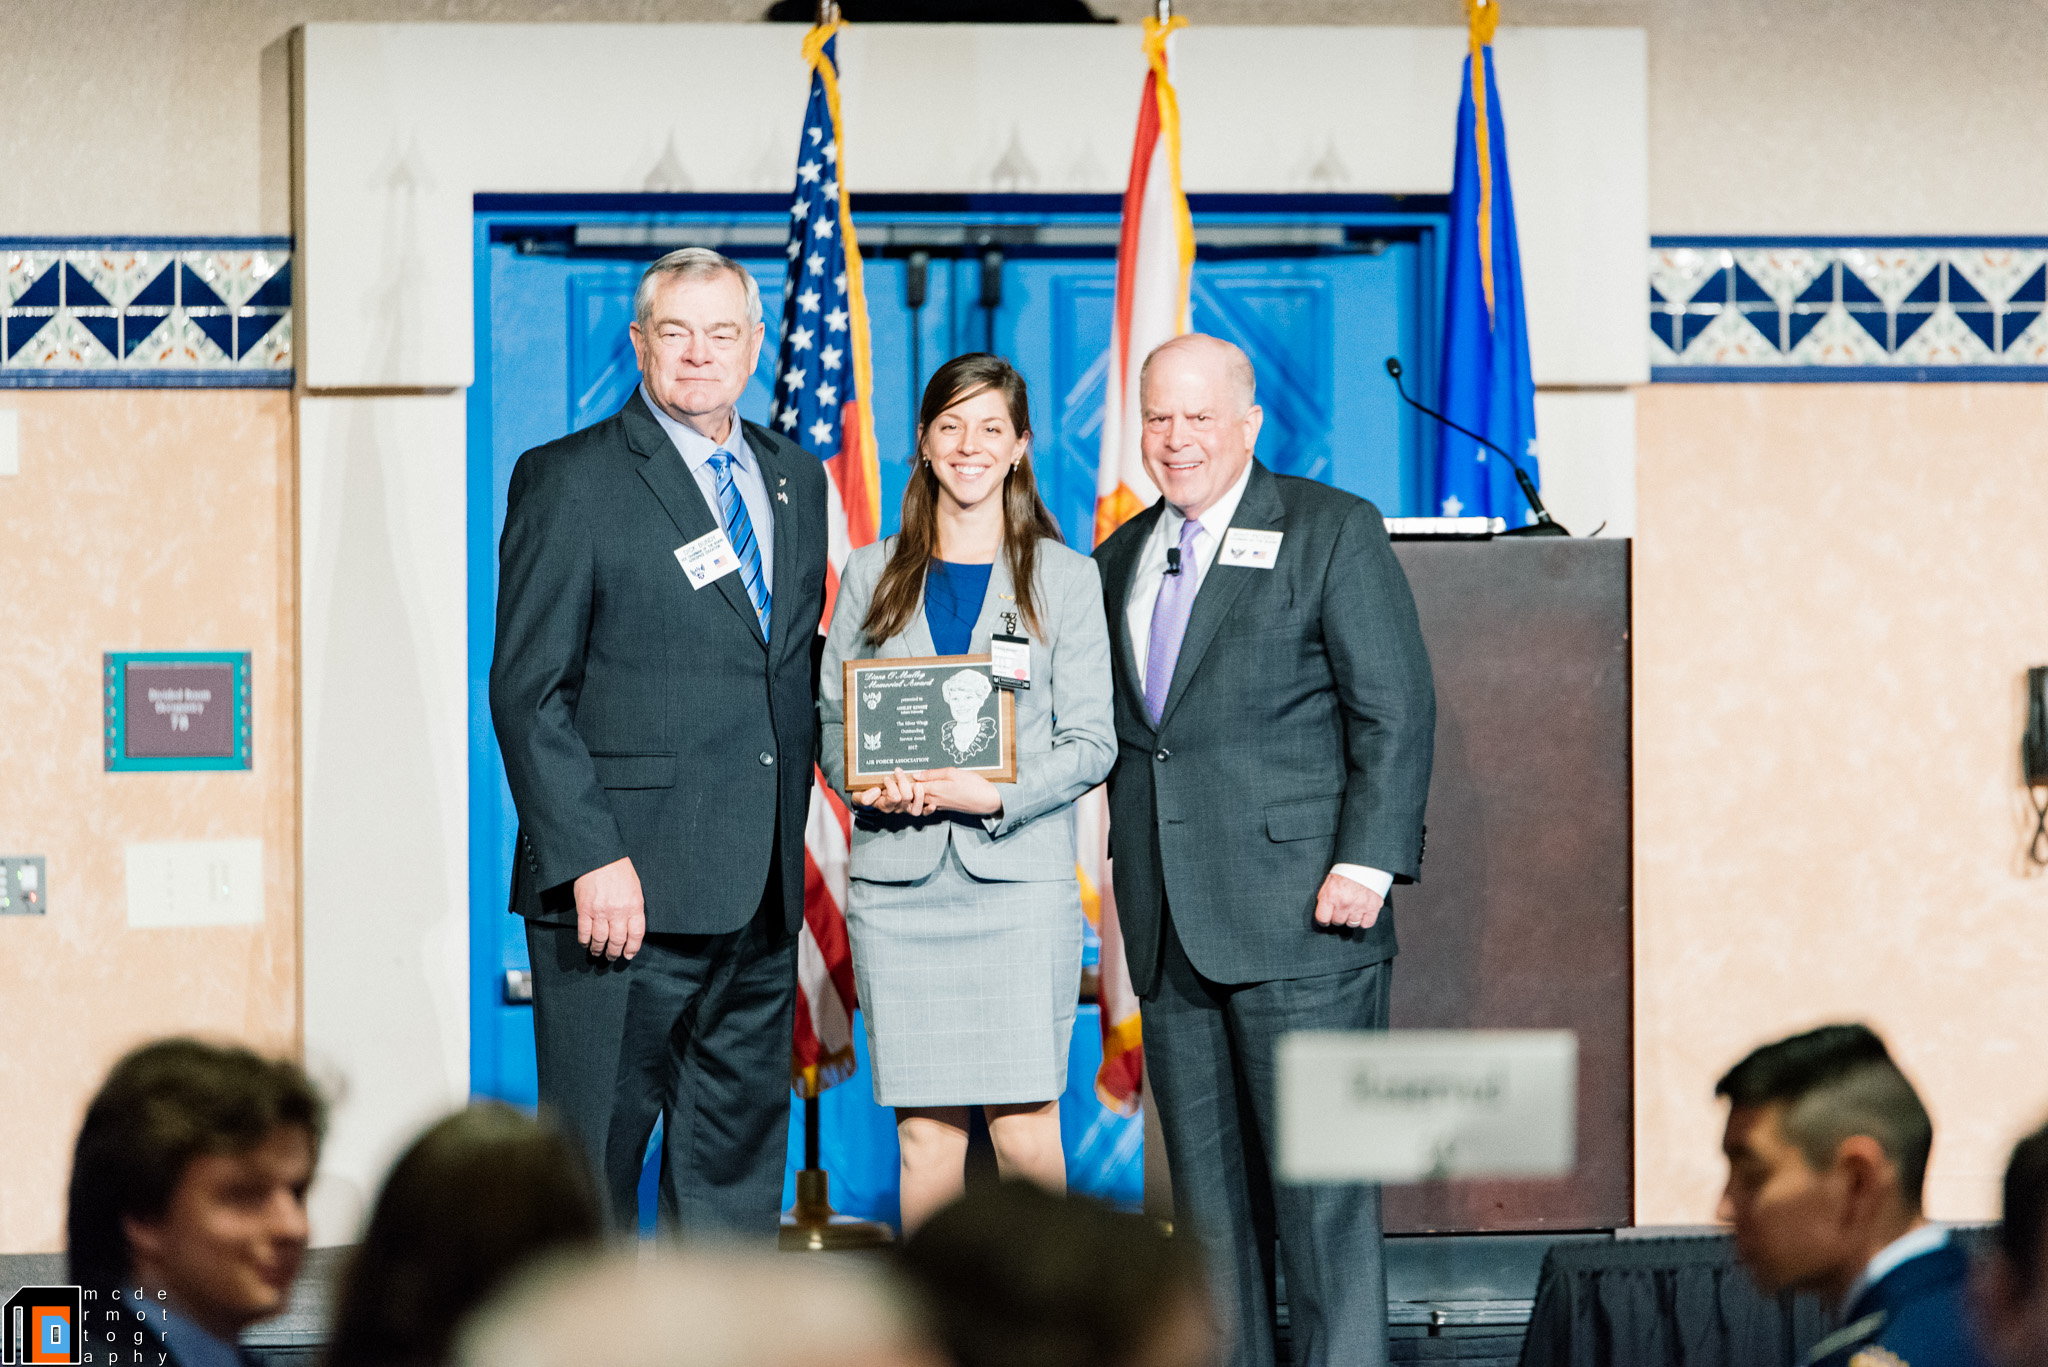 Brig Gen (Ret.) Dick Bundy, AFA Chairman of the Board for Aerospace Education and Secretary Whit Peters, AFA Chairman of the Board, present Ms. Ashley Kinsey with the AFA Diane O'Malley Silver Wings Outstanding Service Award.  Photo by Cadet Isaac McDermott